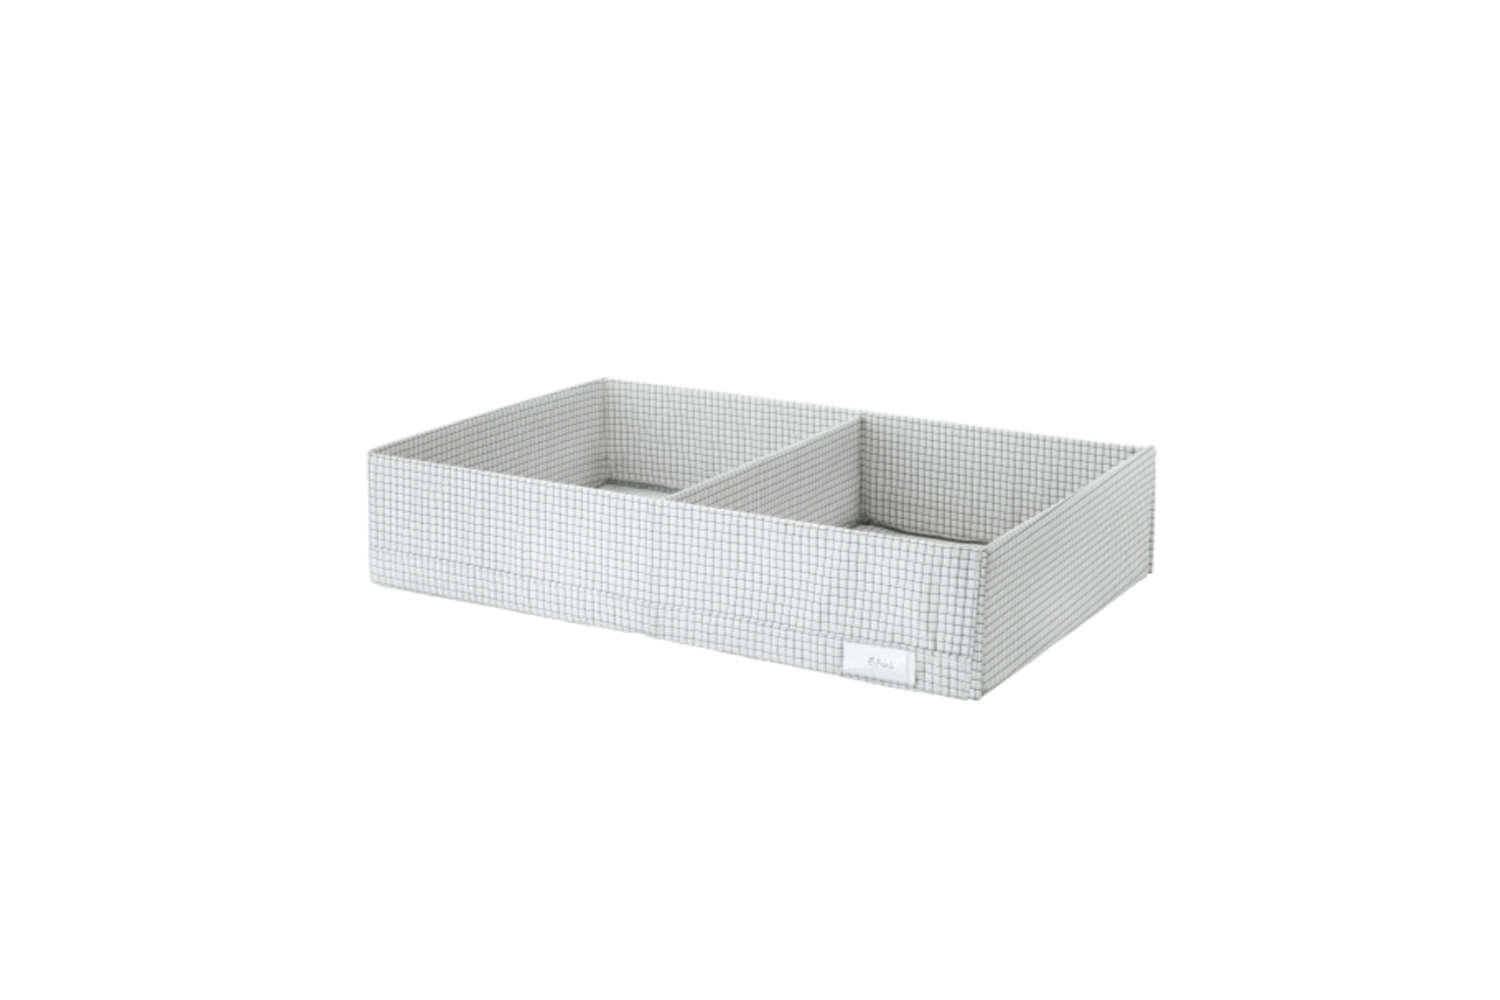 Ikea Box Holder The Cull 13 Best Finds At Ikea For An Organized Home Under 20